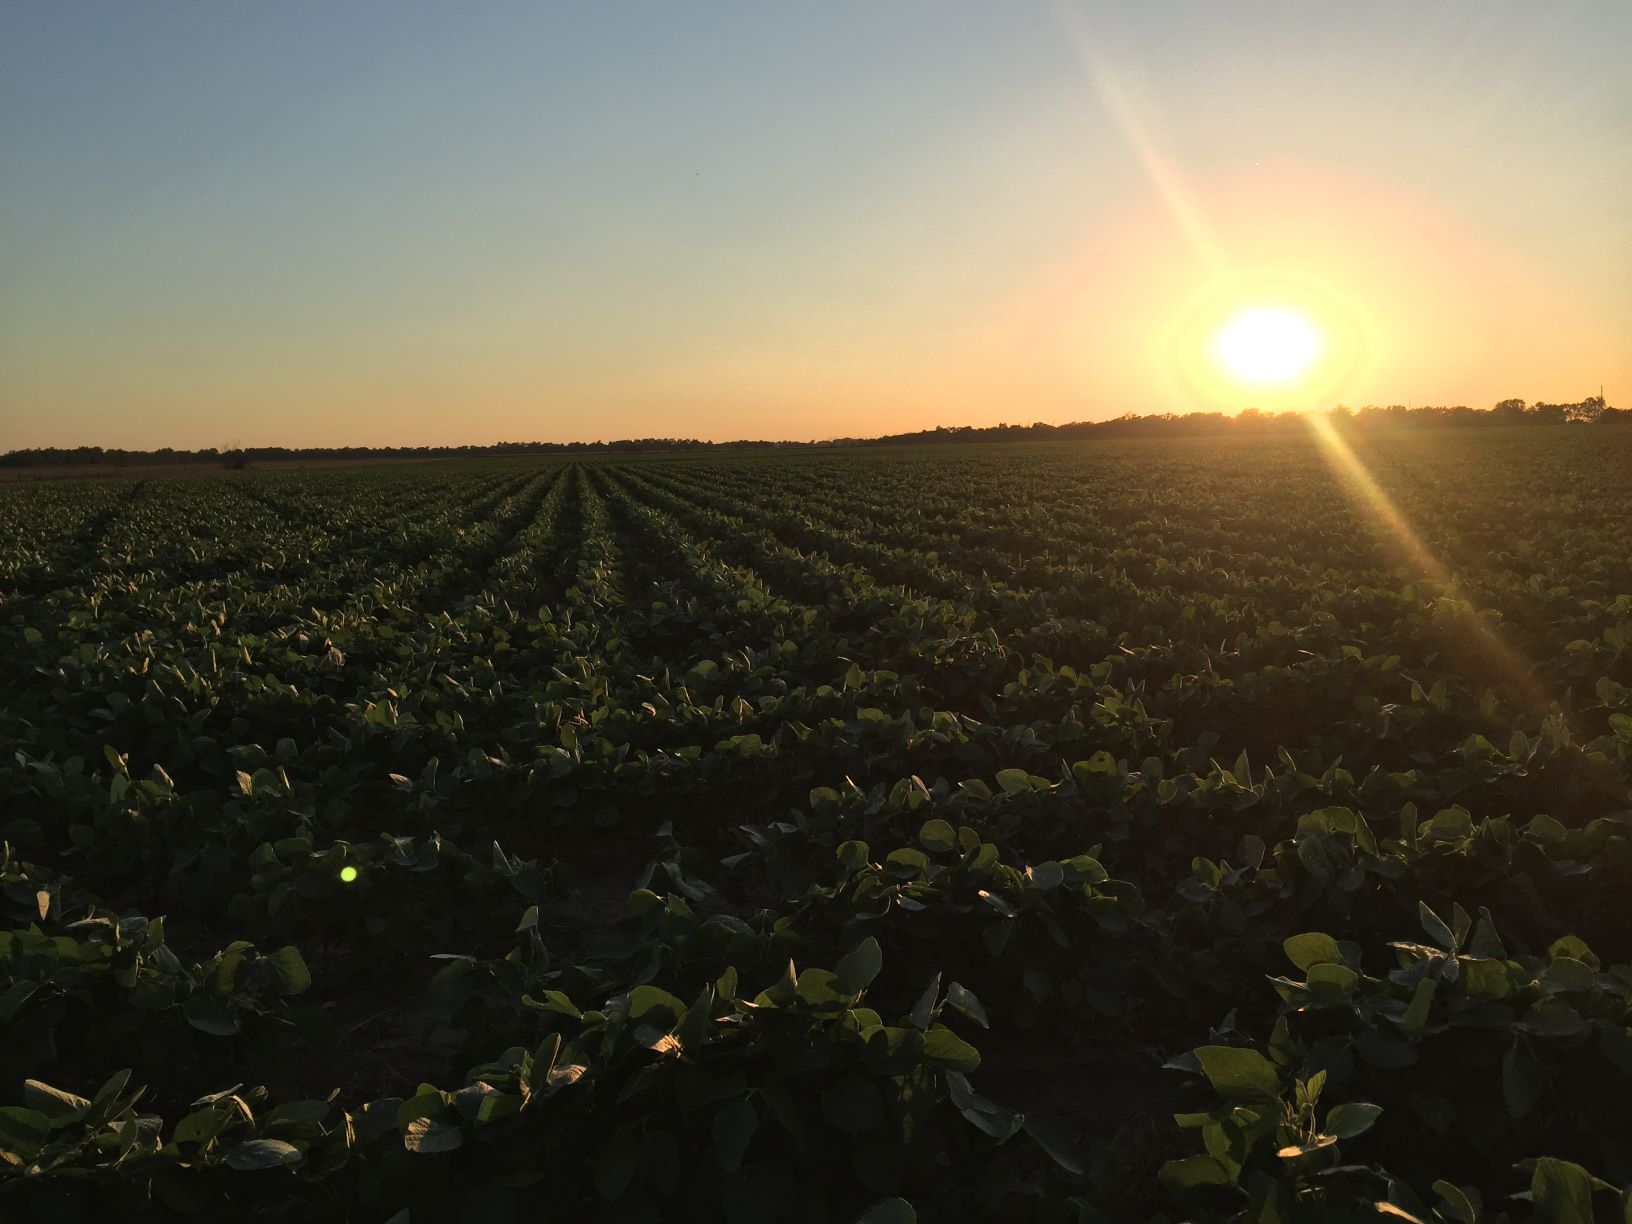 2018 Soybean Crop is Looking to Break Records